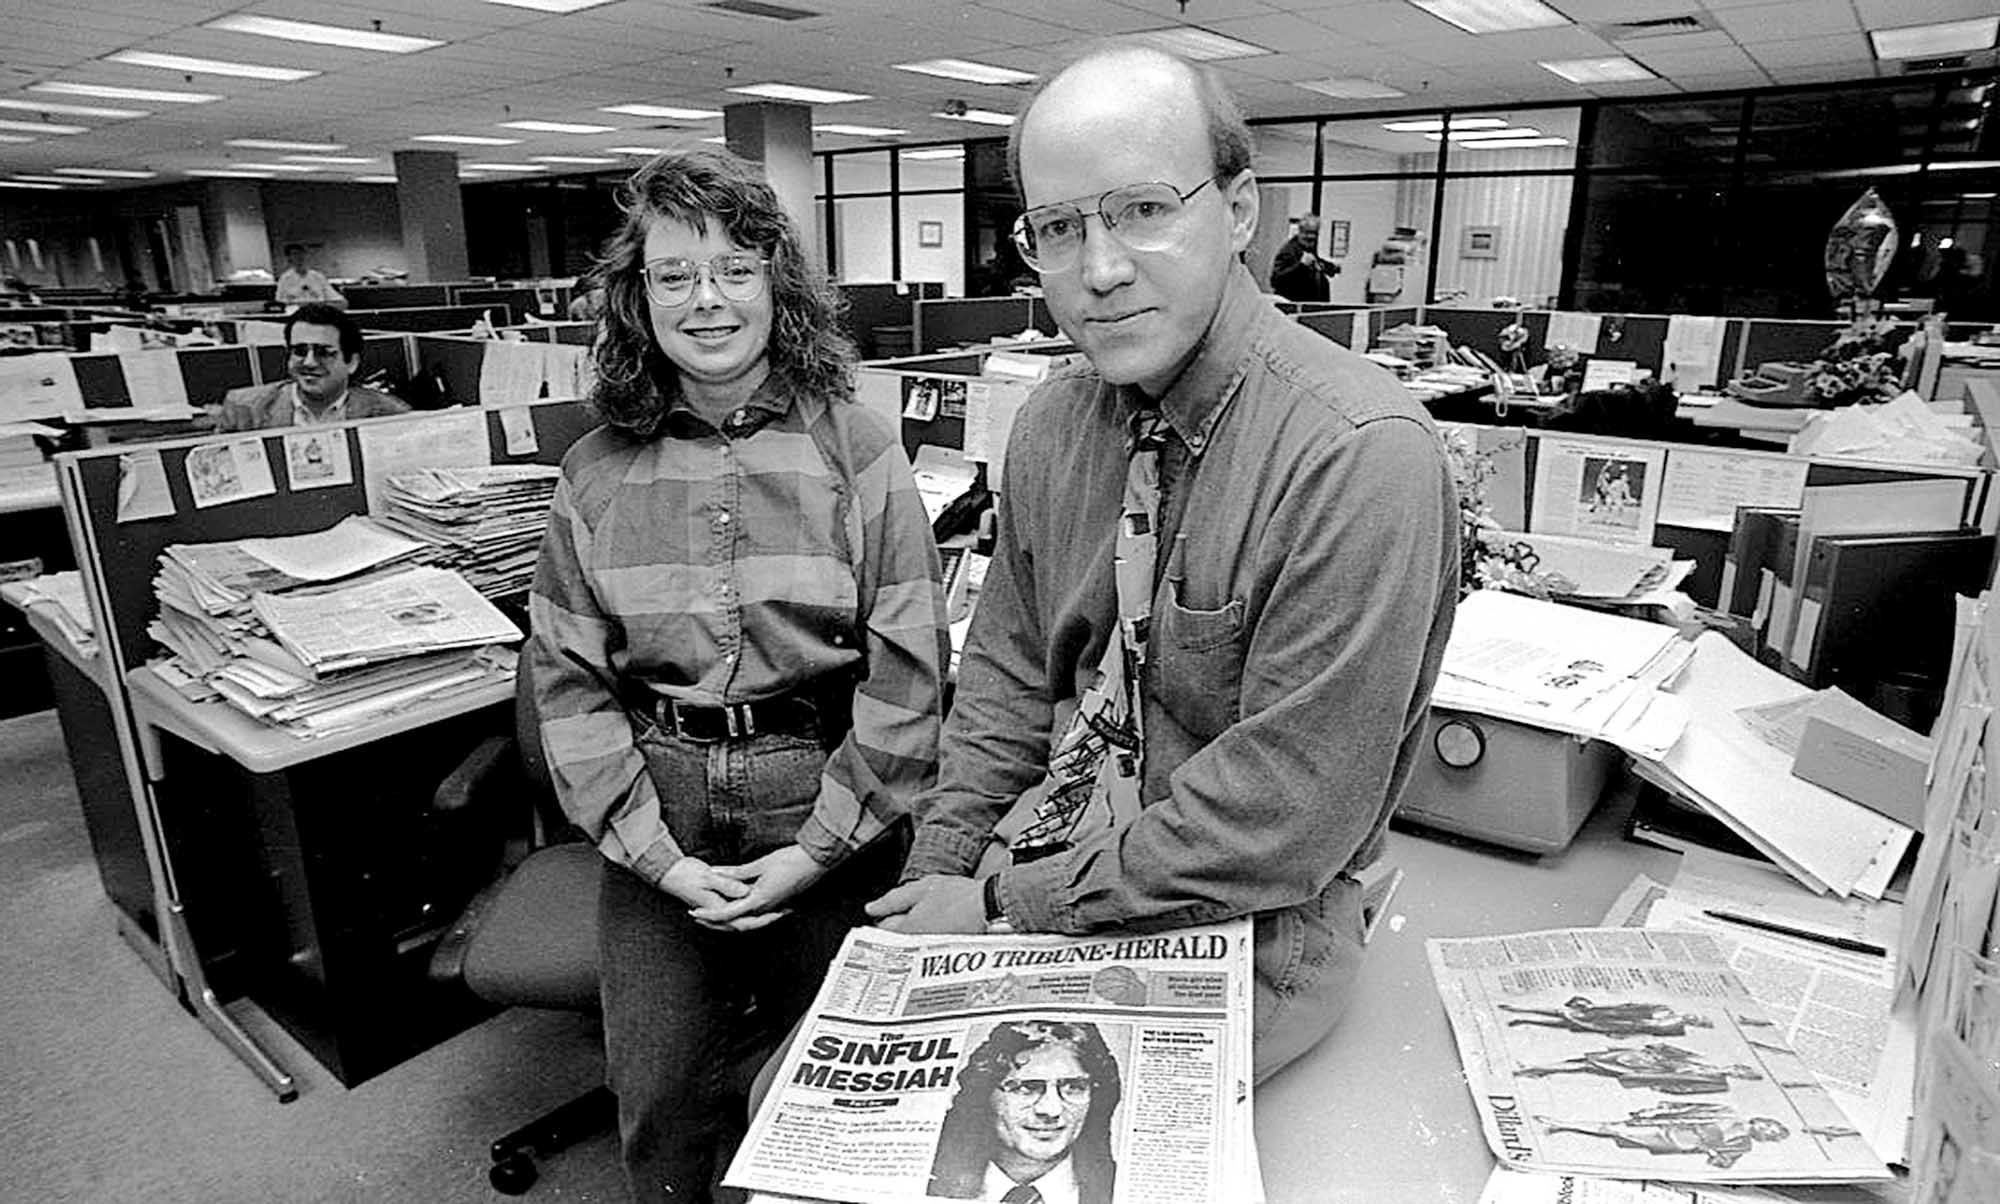 Darlene McCormick and Mark England, reporters of the